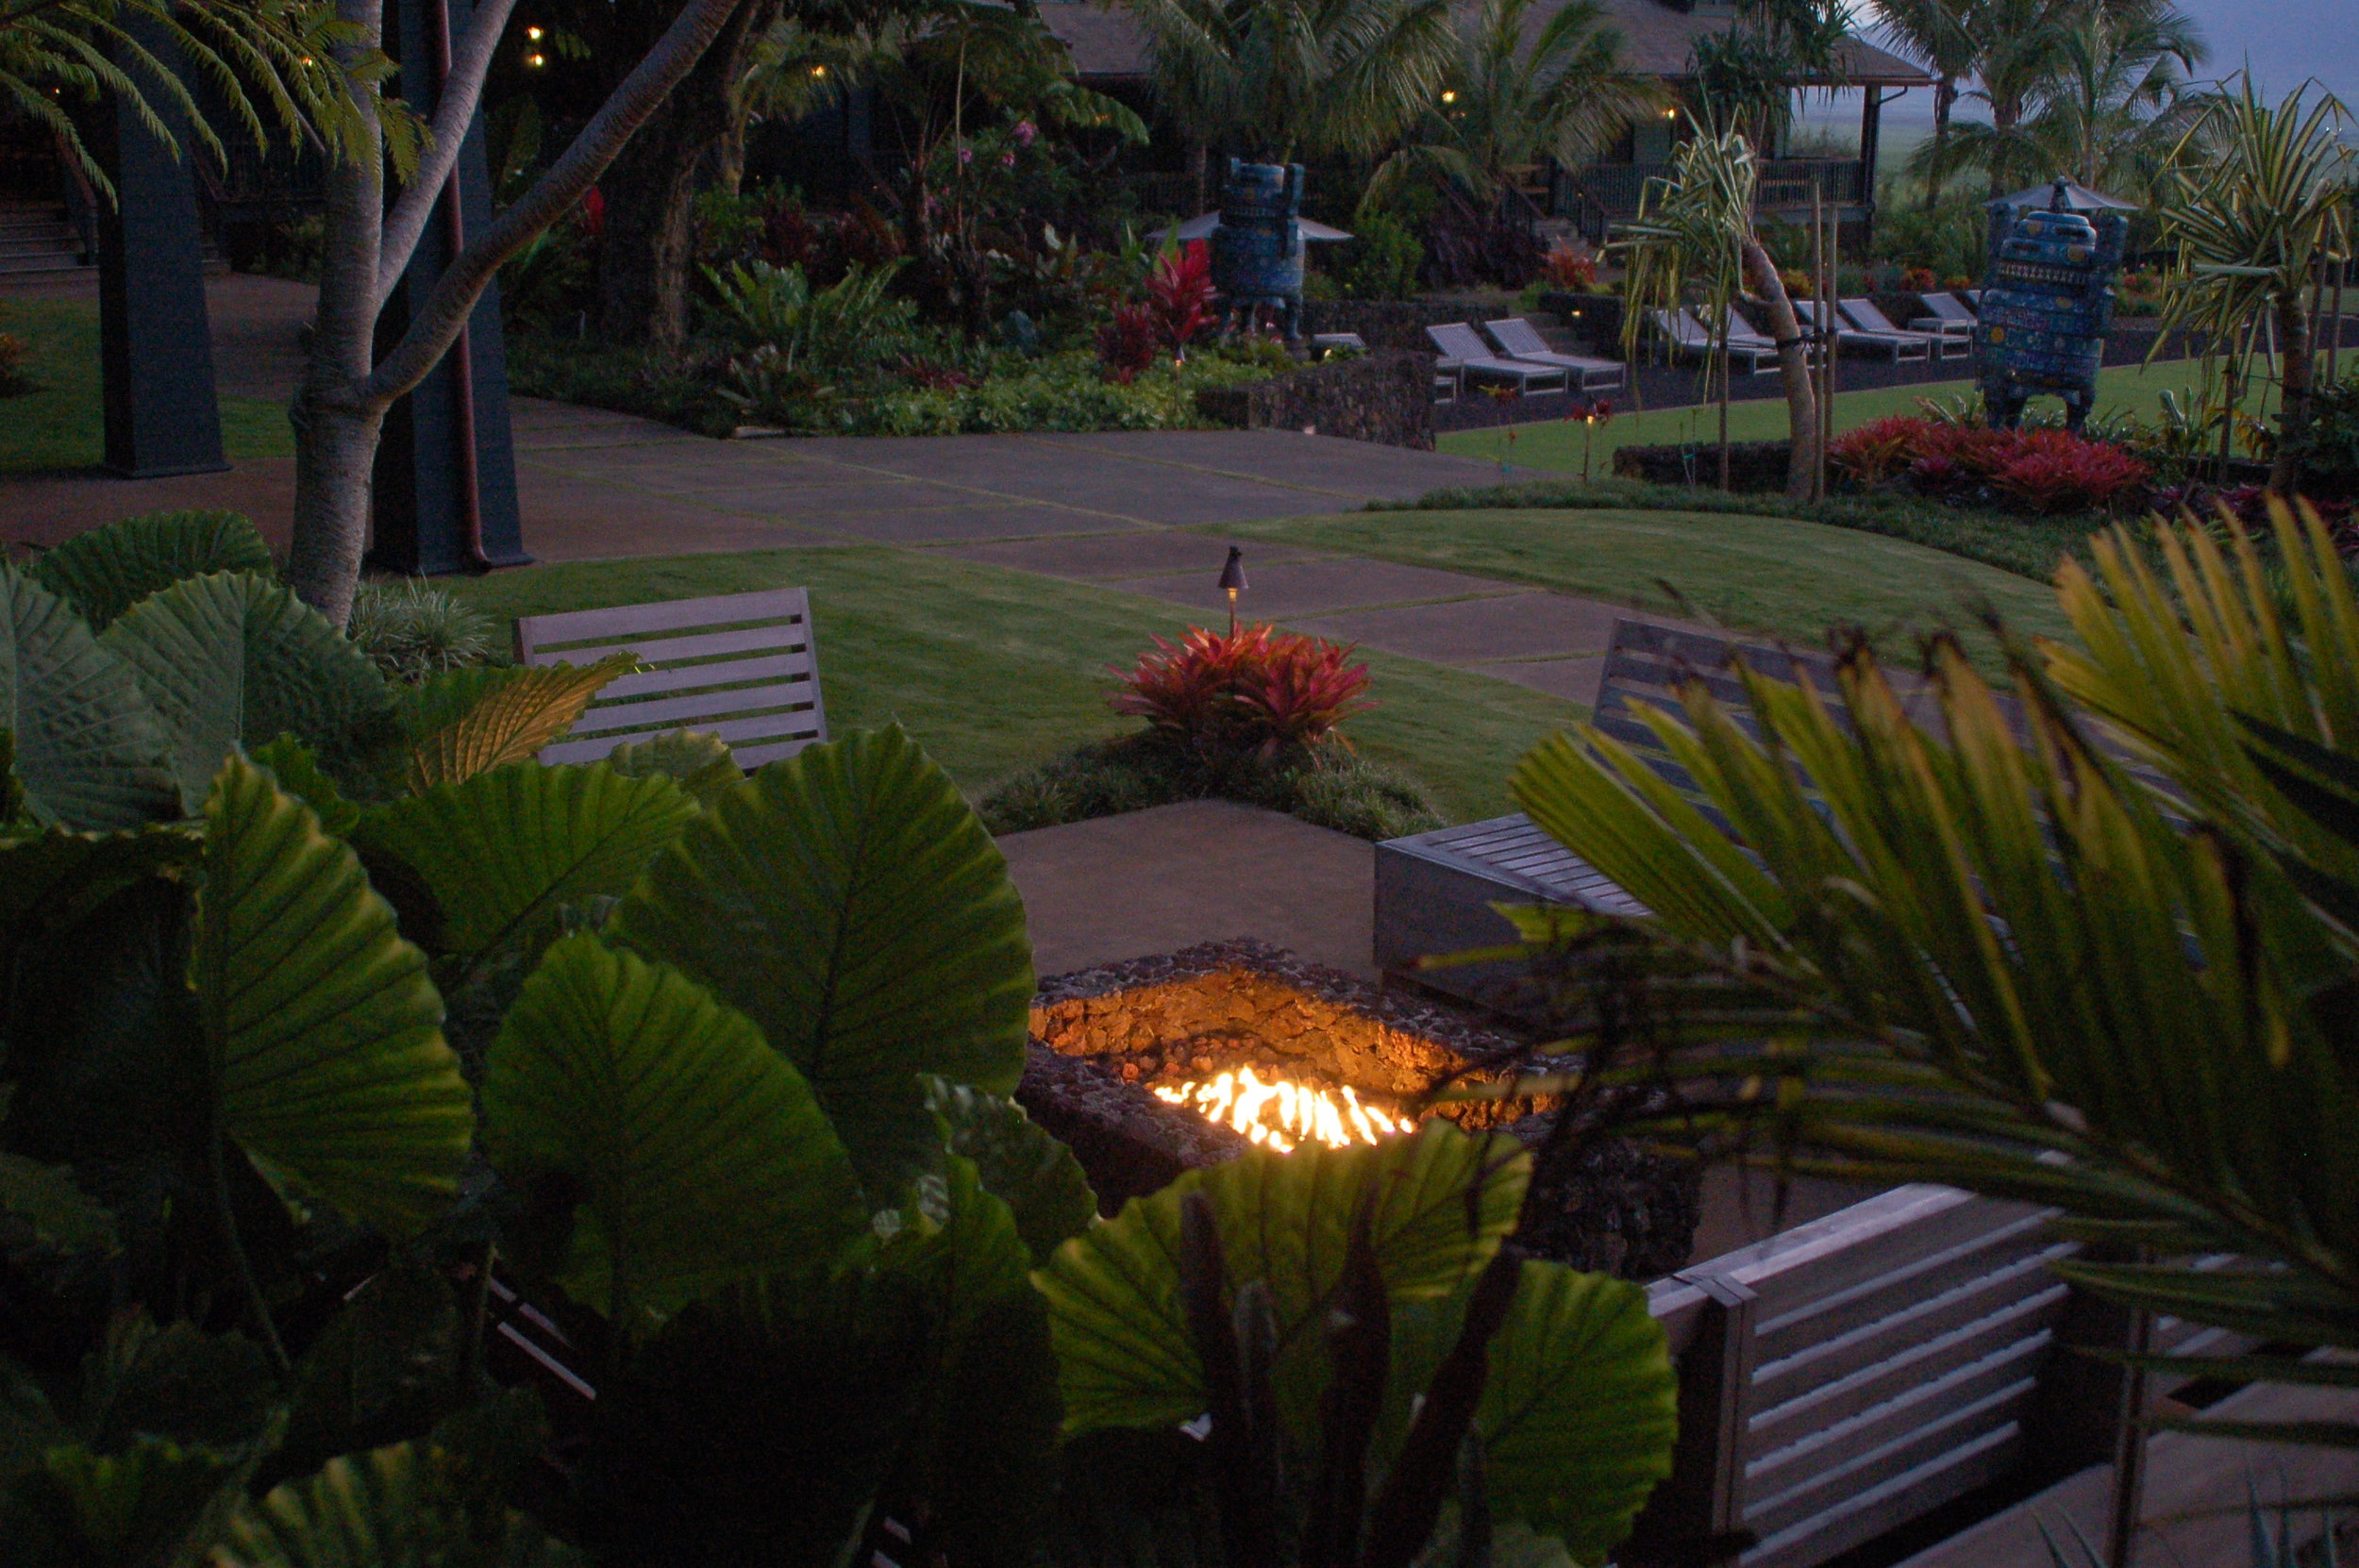 PROPERTY-GATHERING SPACES-FIRE PIT-no people.jpg